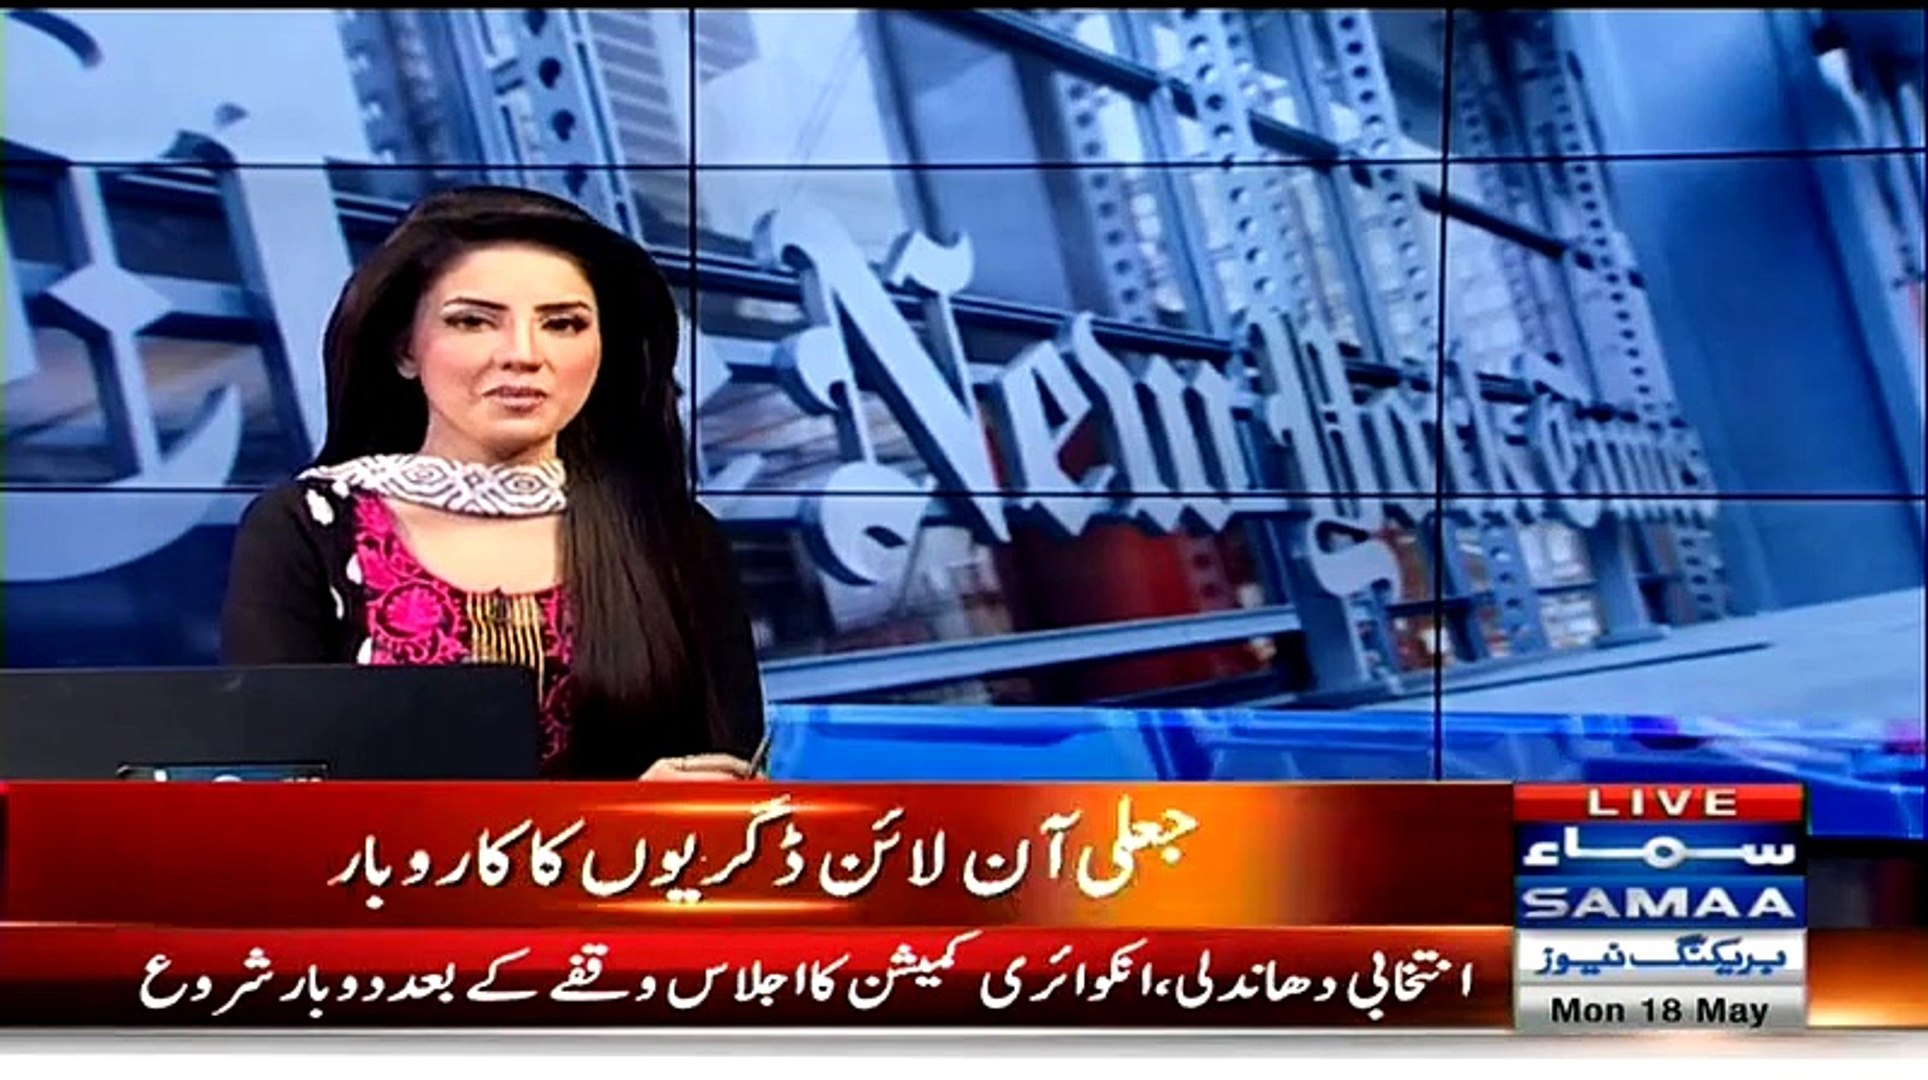 The Money Behind Bol Has Been Revealed - Axact Company Selling Fake Degrees